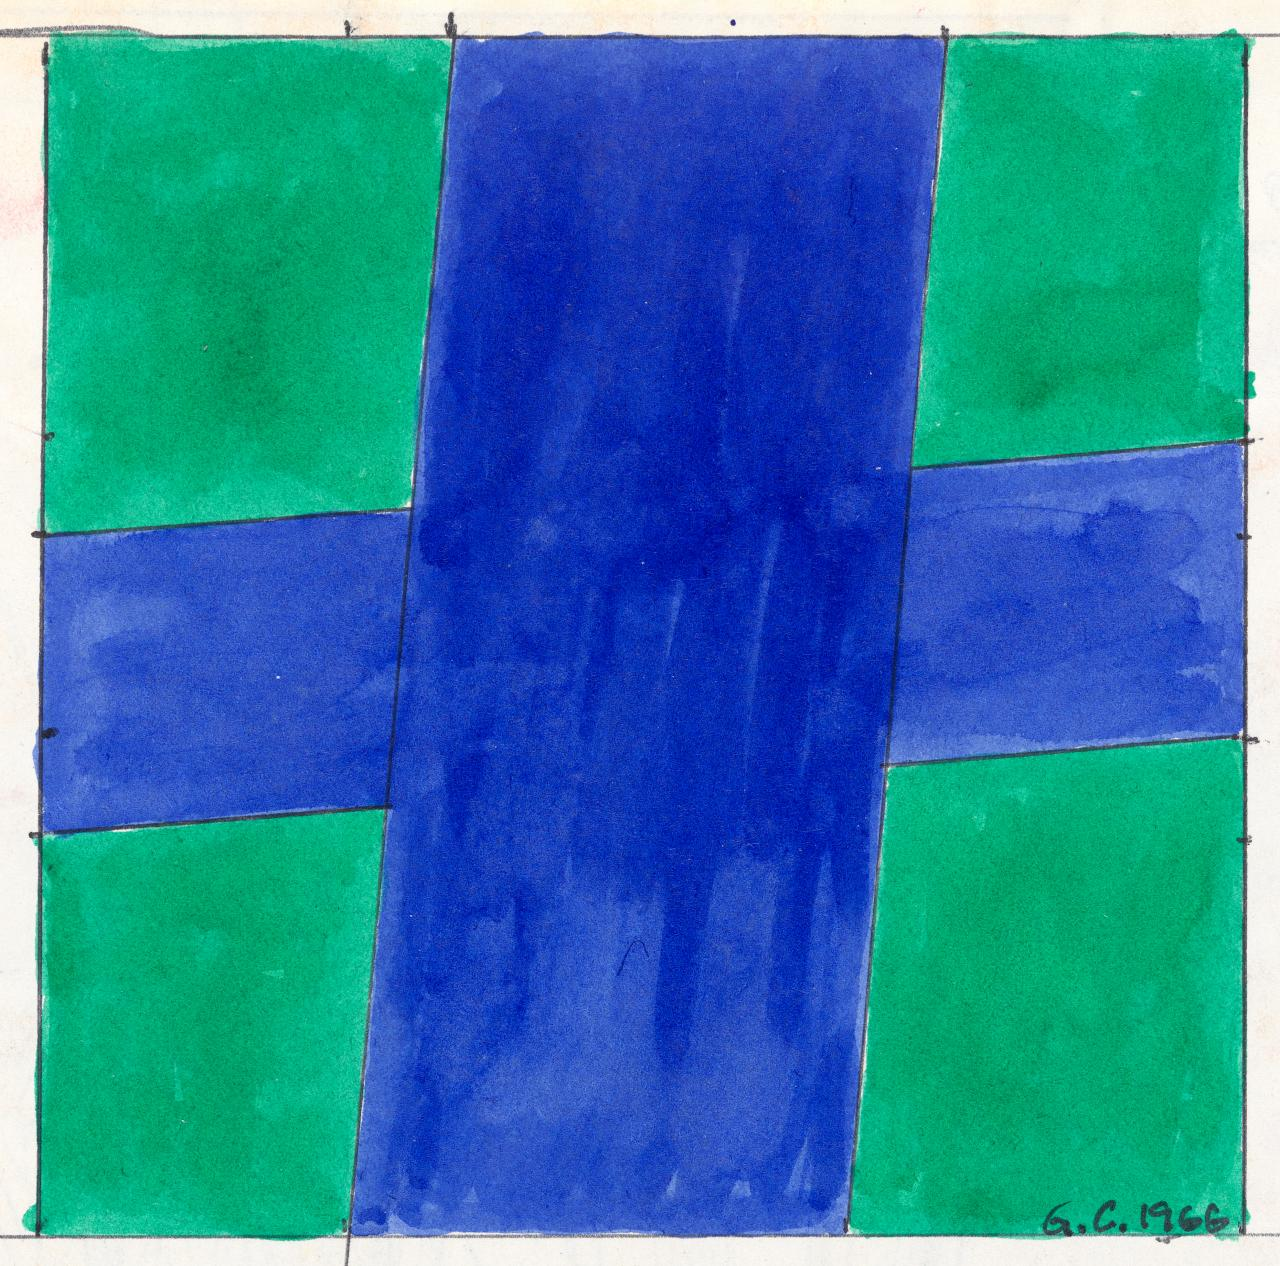 Untitled (Blue cross on green ground)